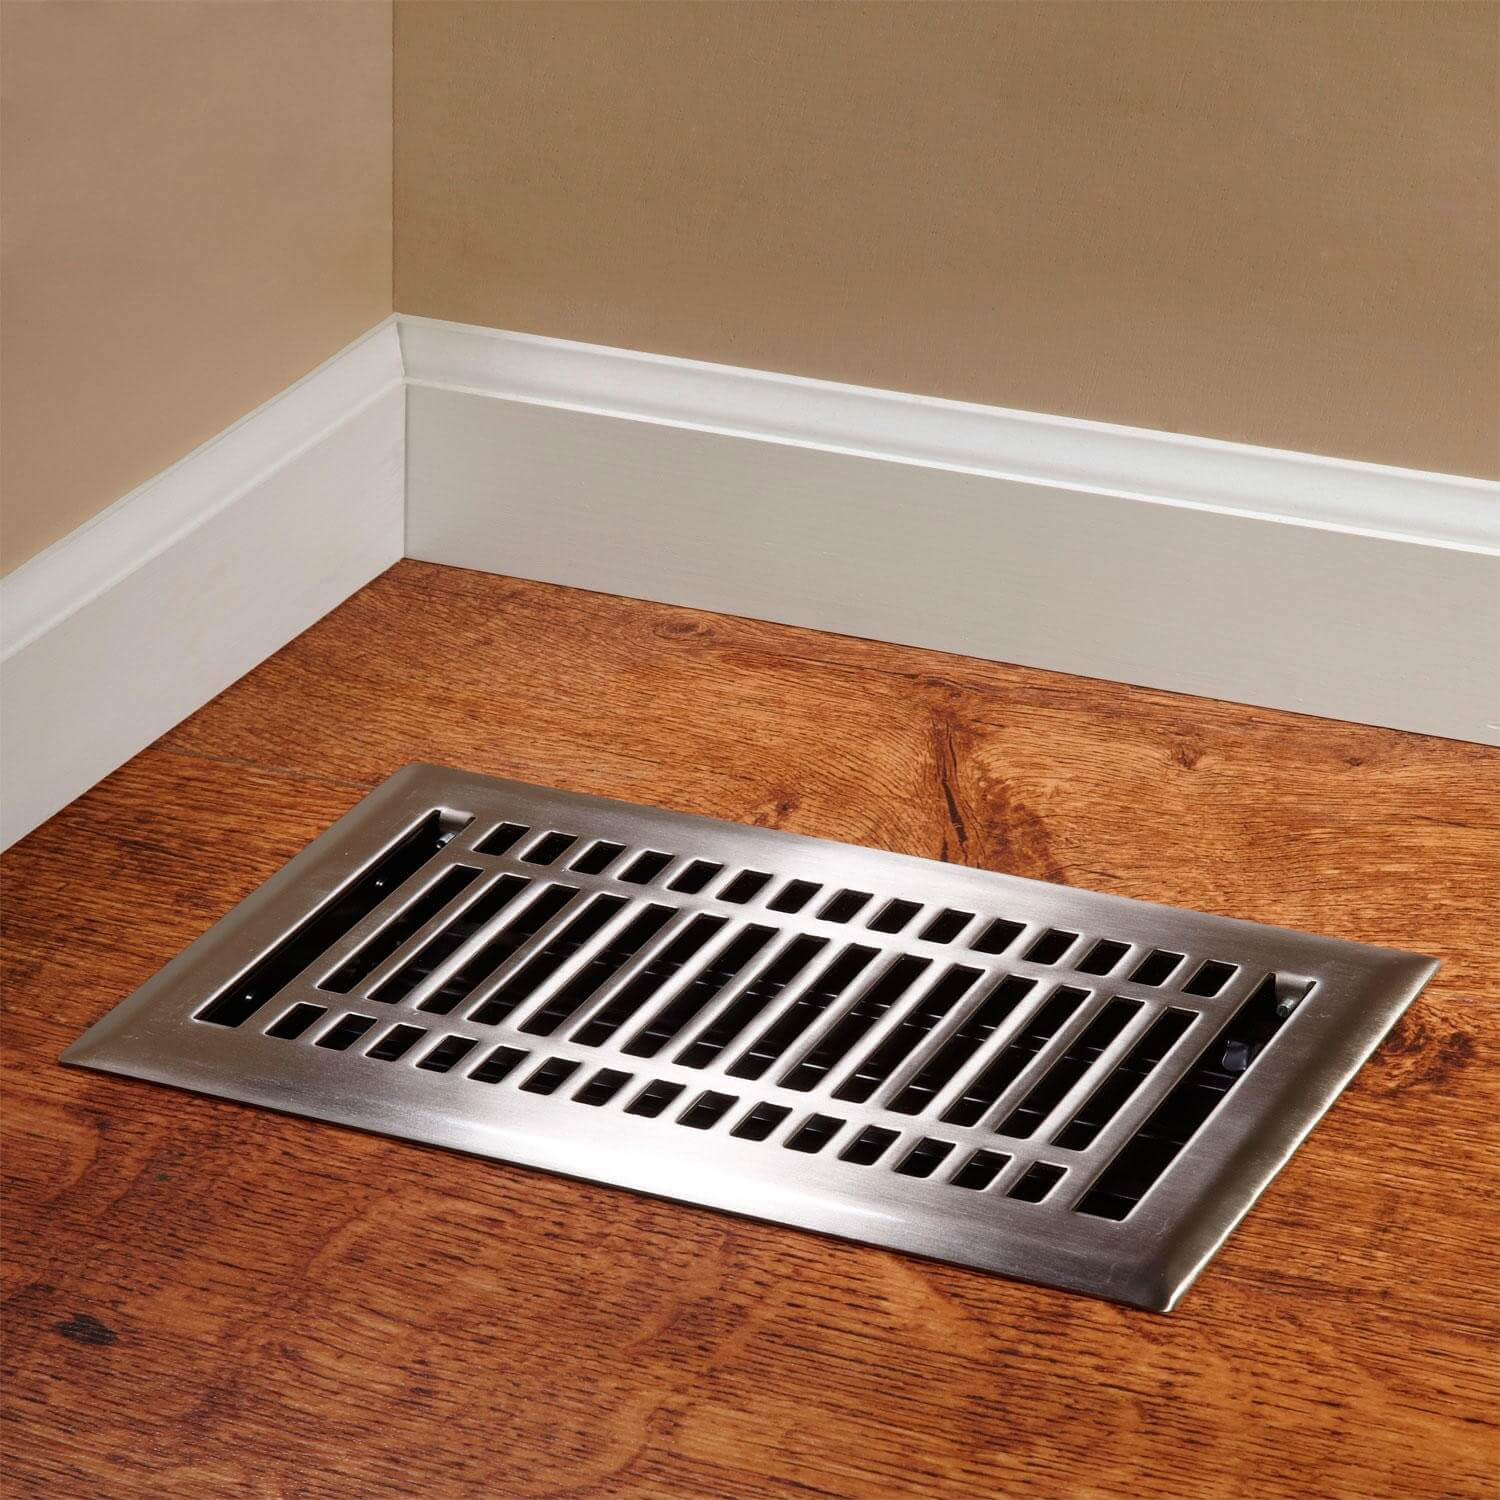 A more traditional form of heating your home